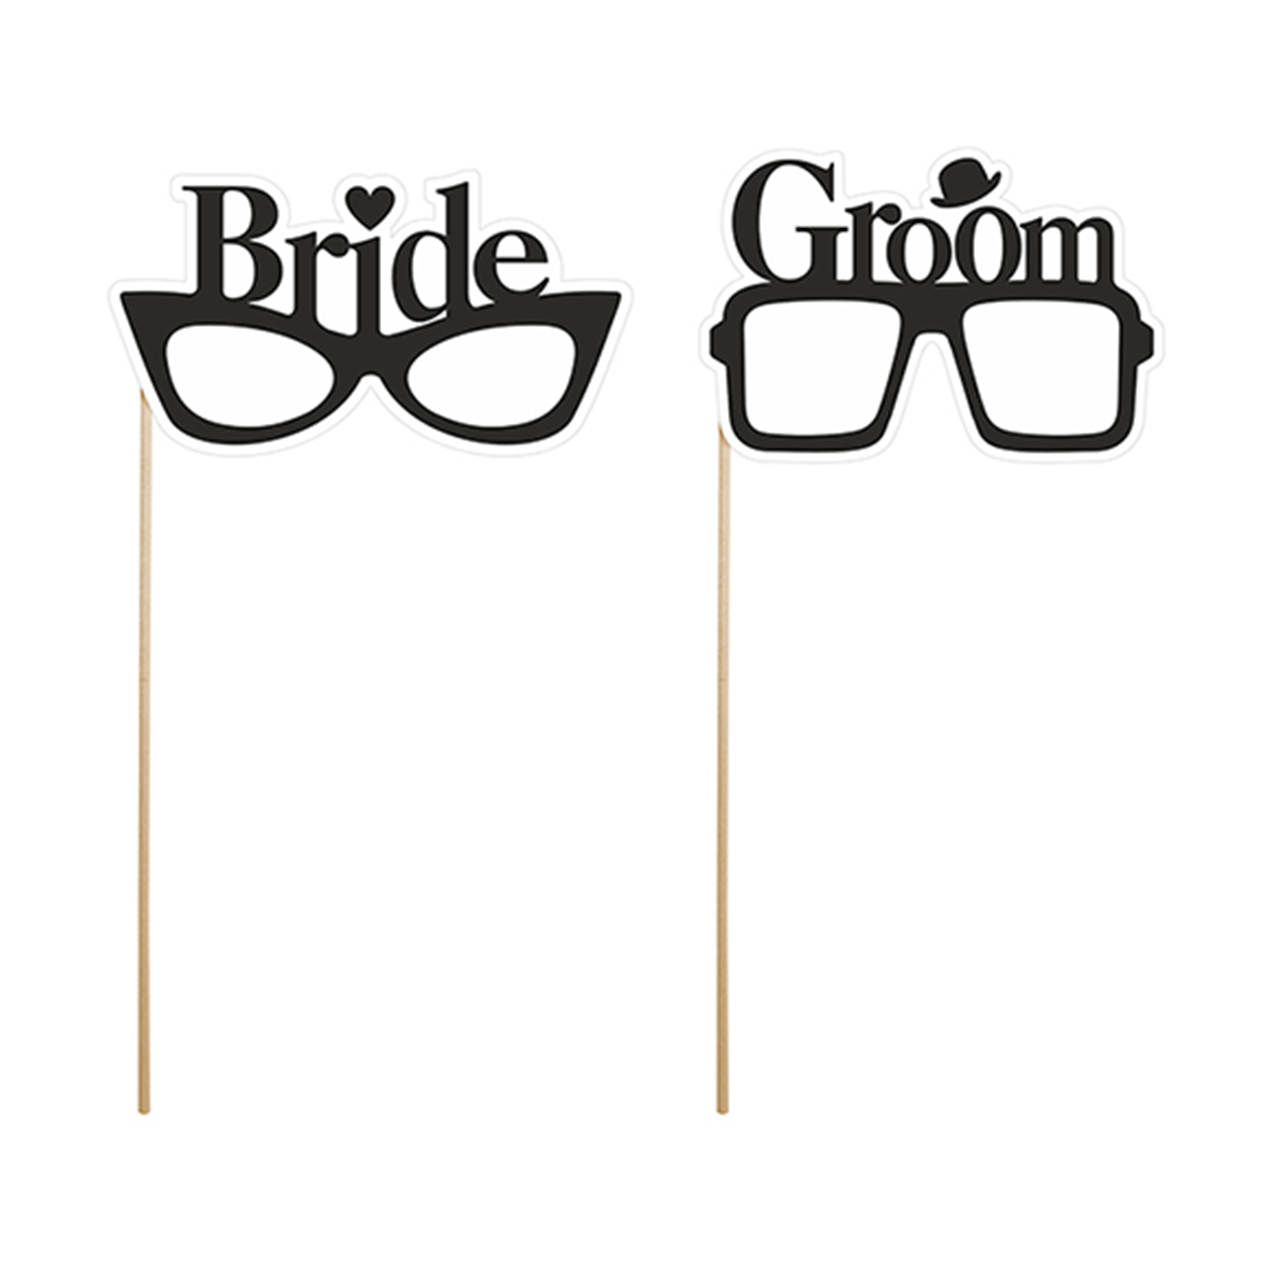 1 Photobooth Set - Bride & Groom